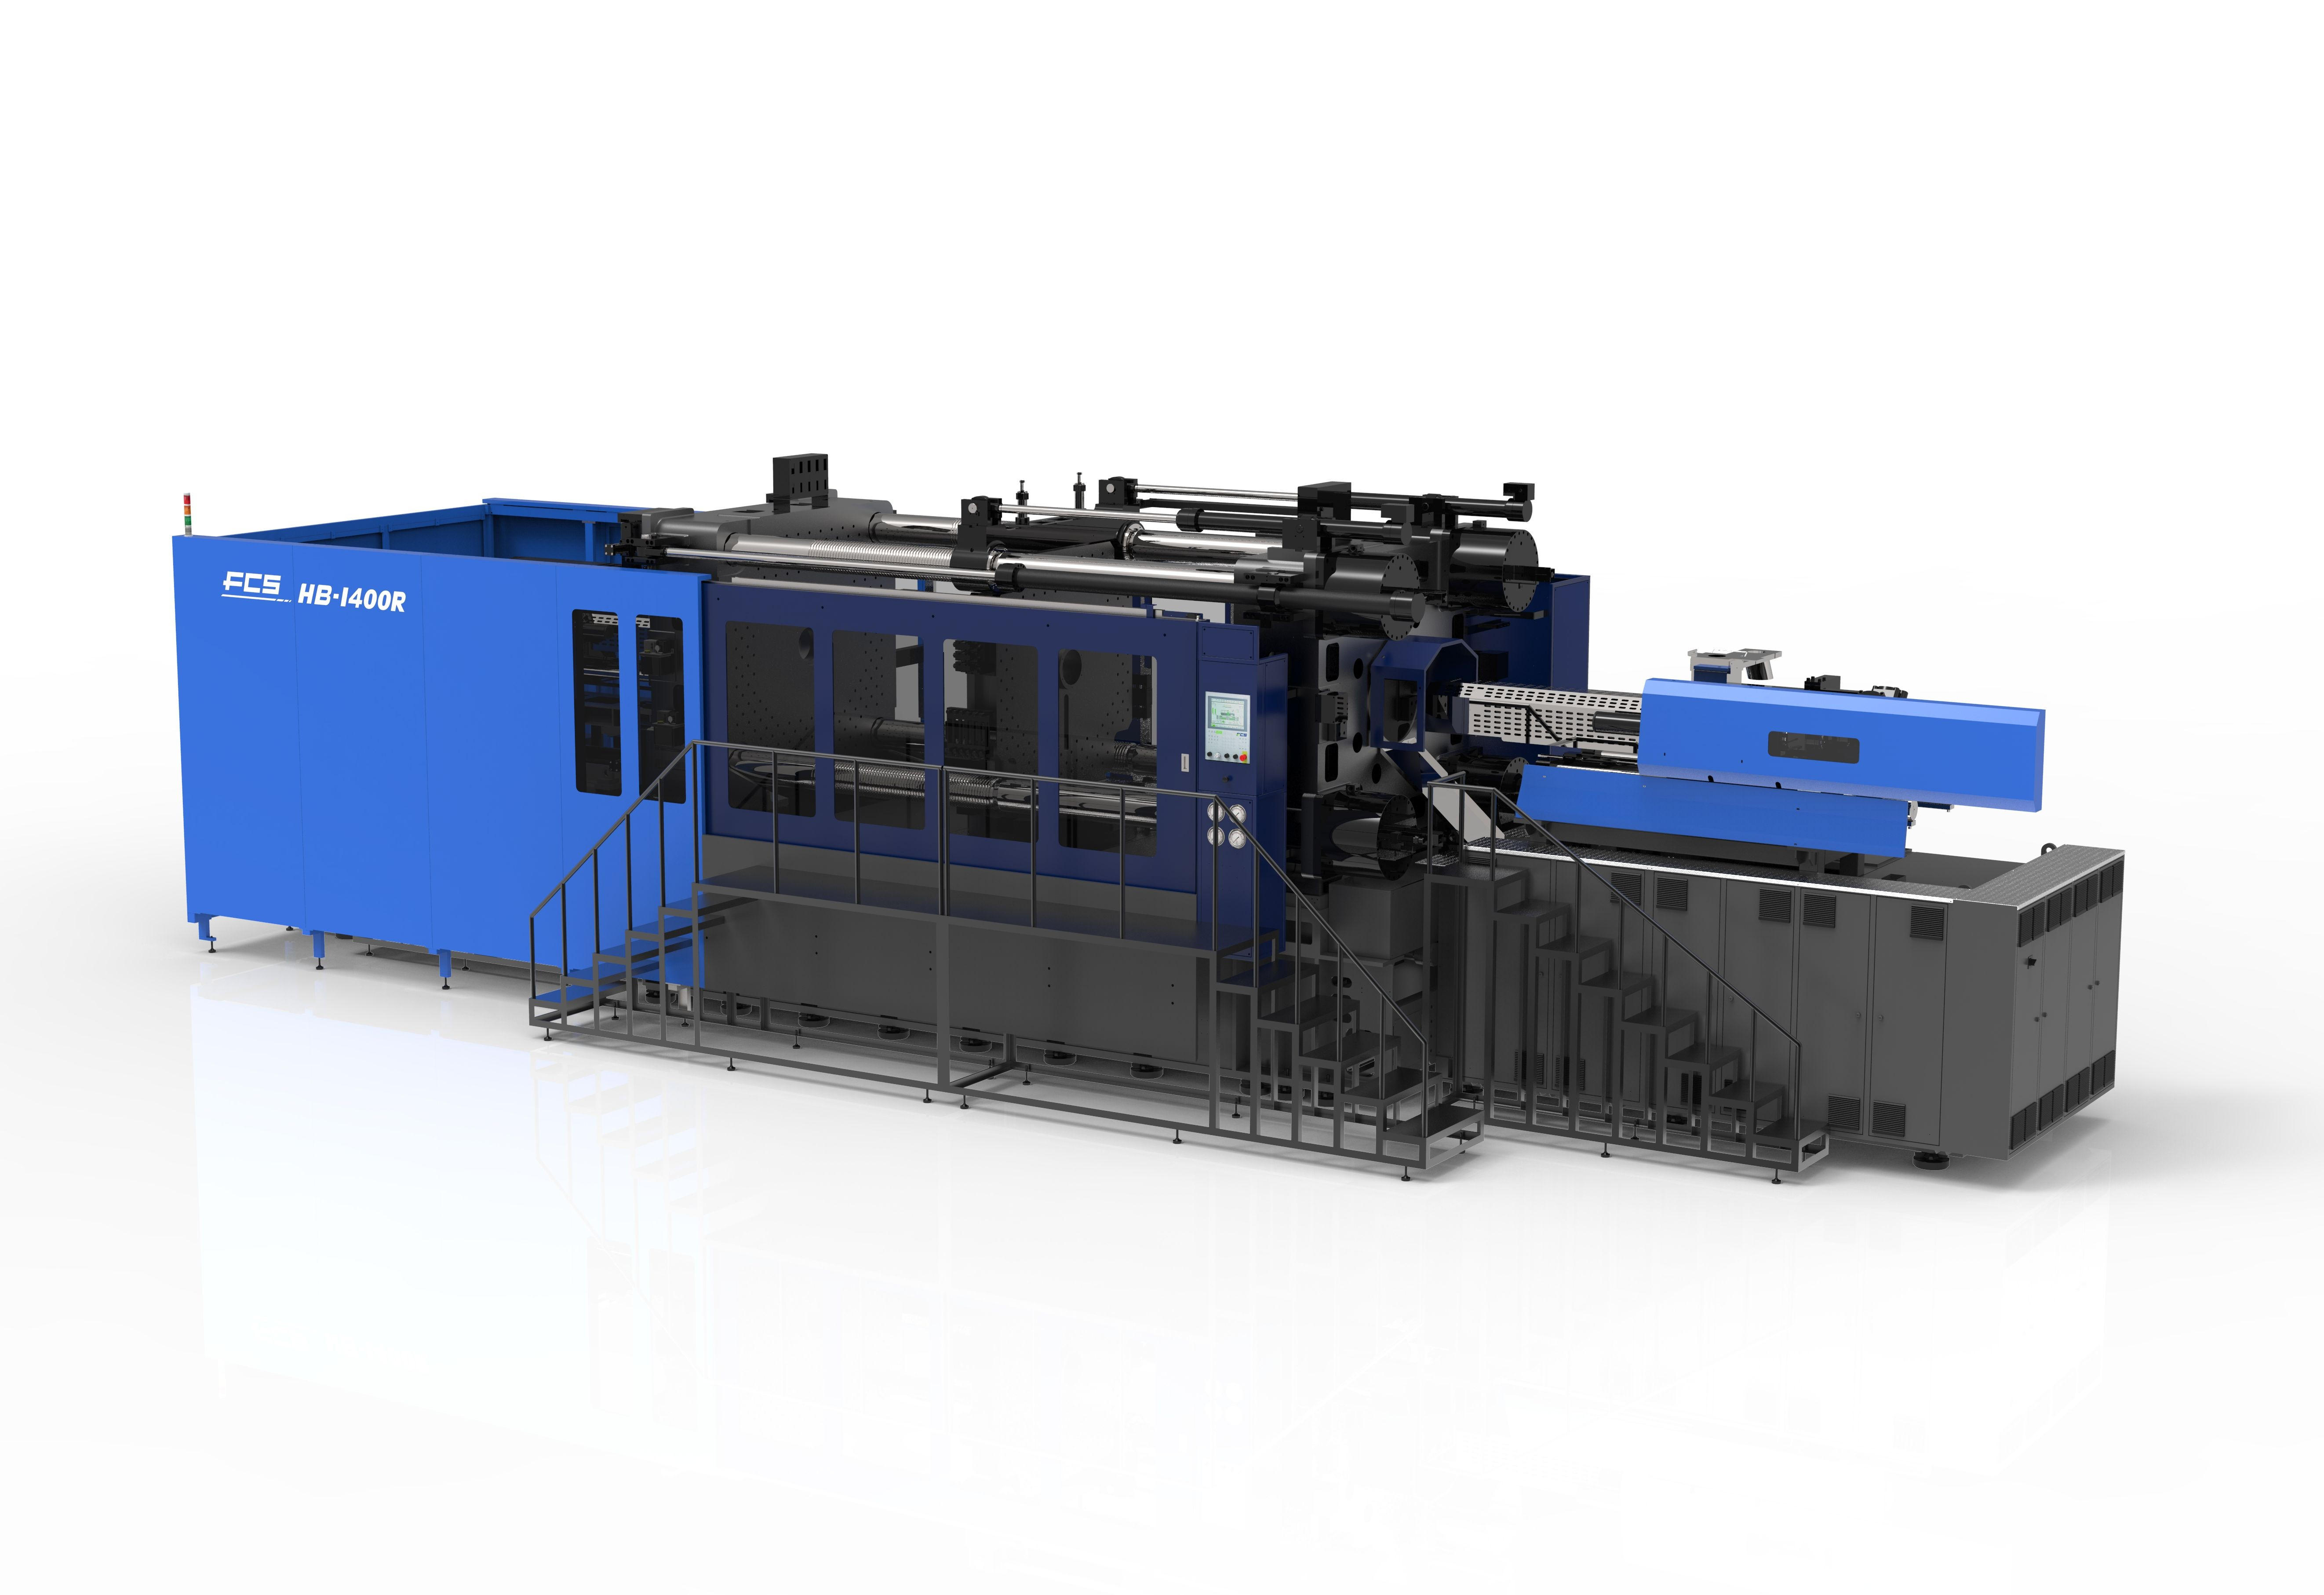 Horizontal Rotary Table Two-Component Injection Molding Machine